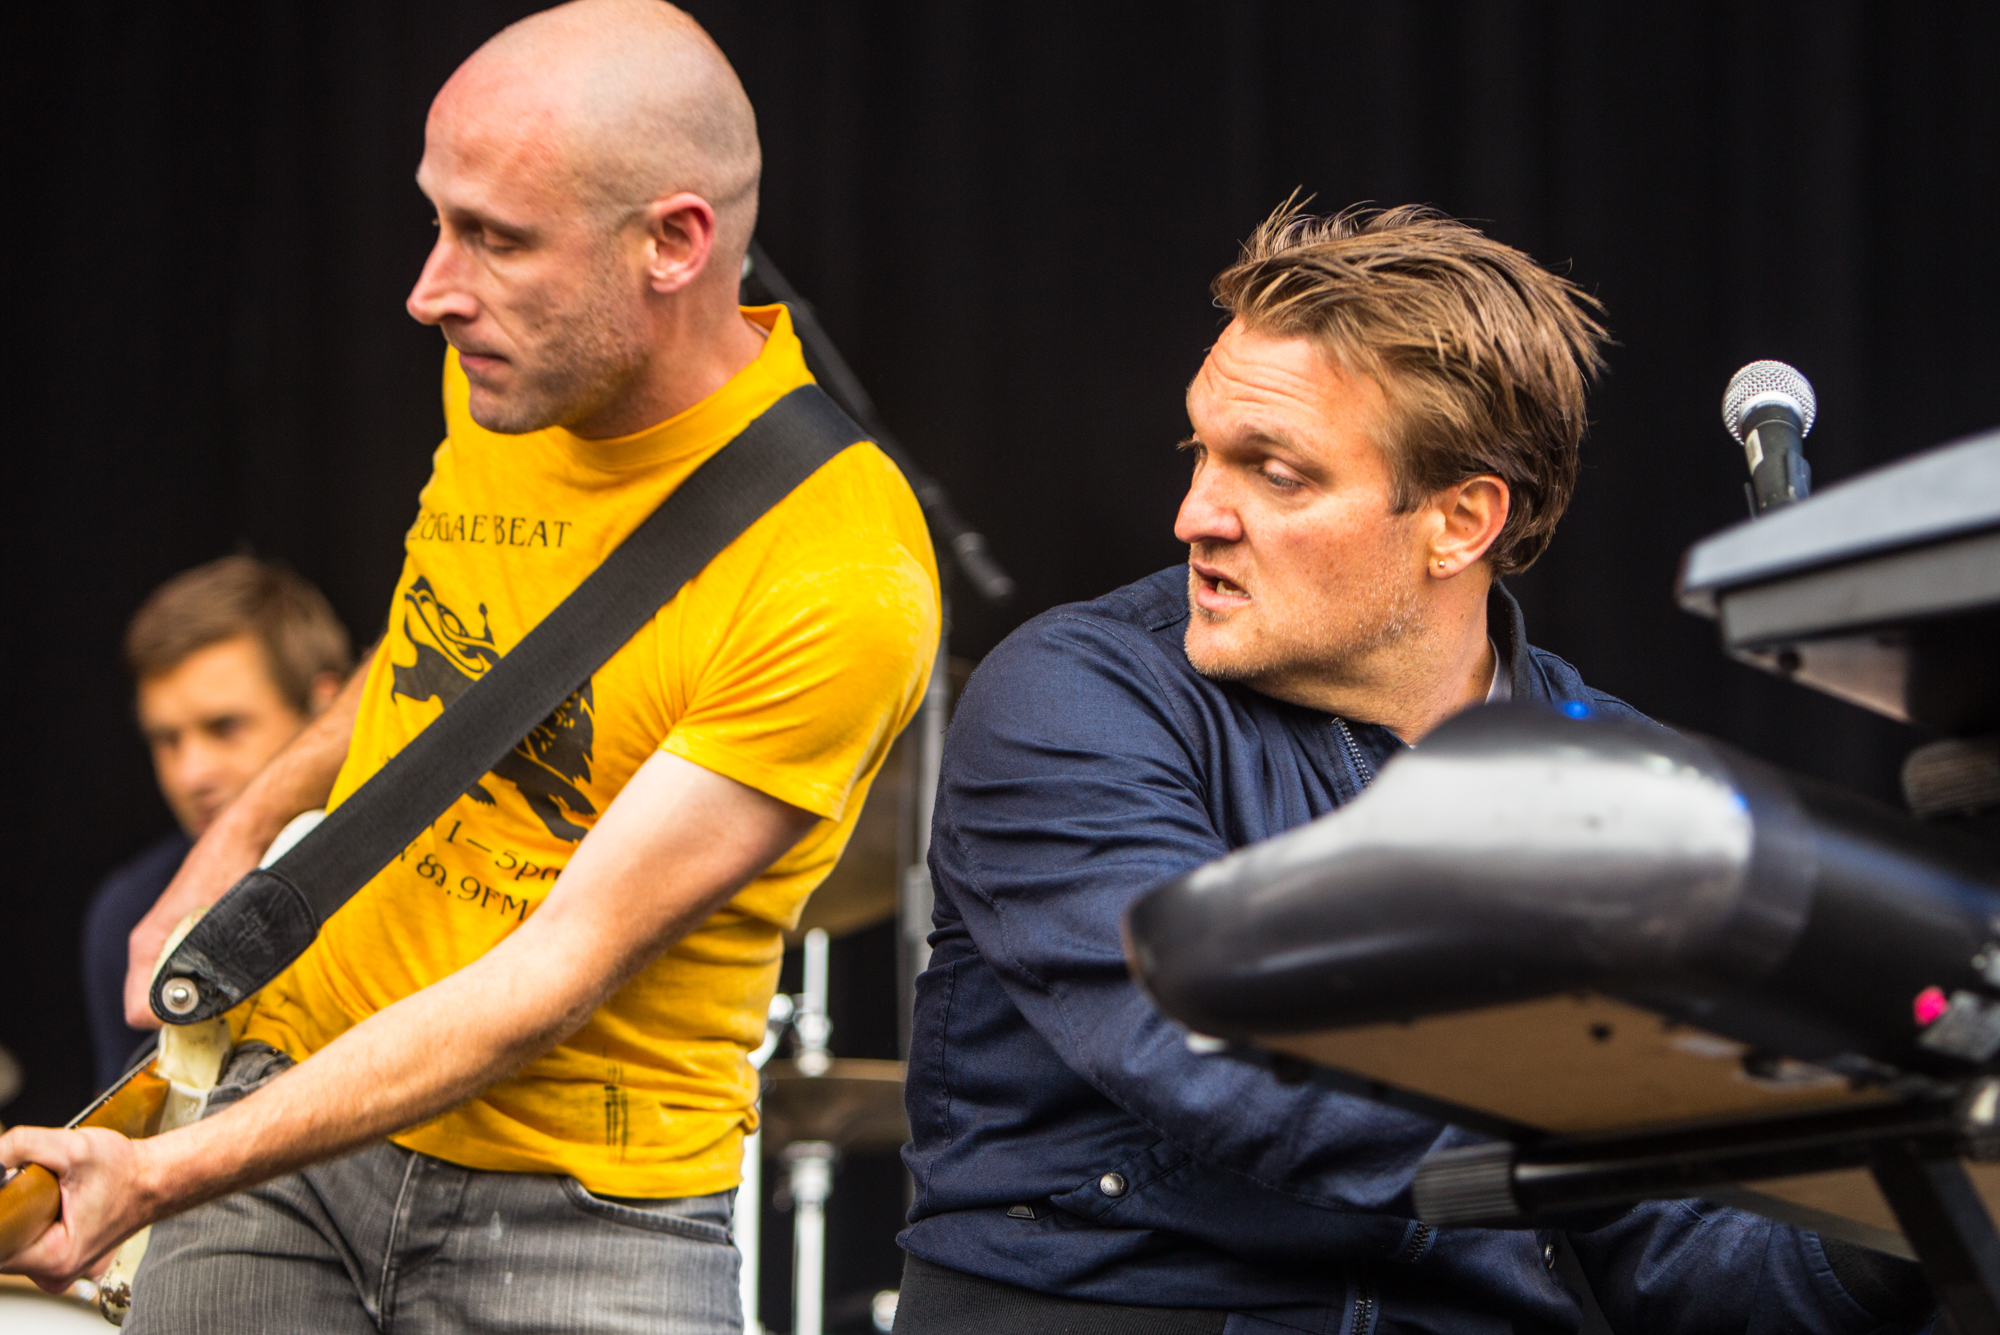 Cold War Kids // Photo by Philip Cosores